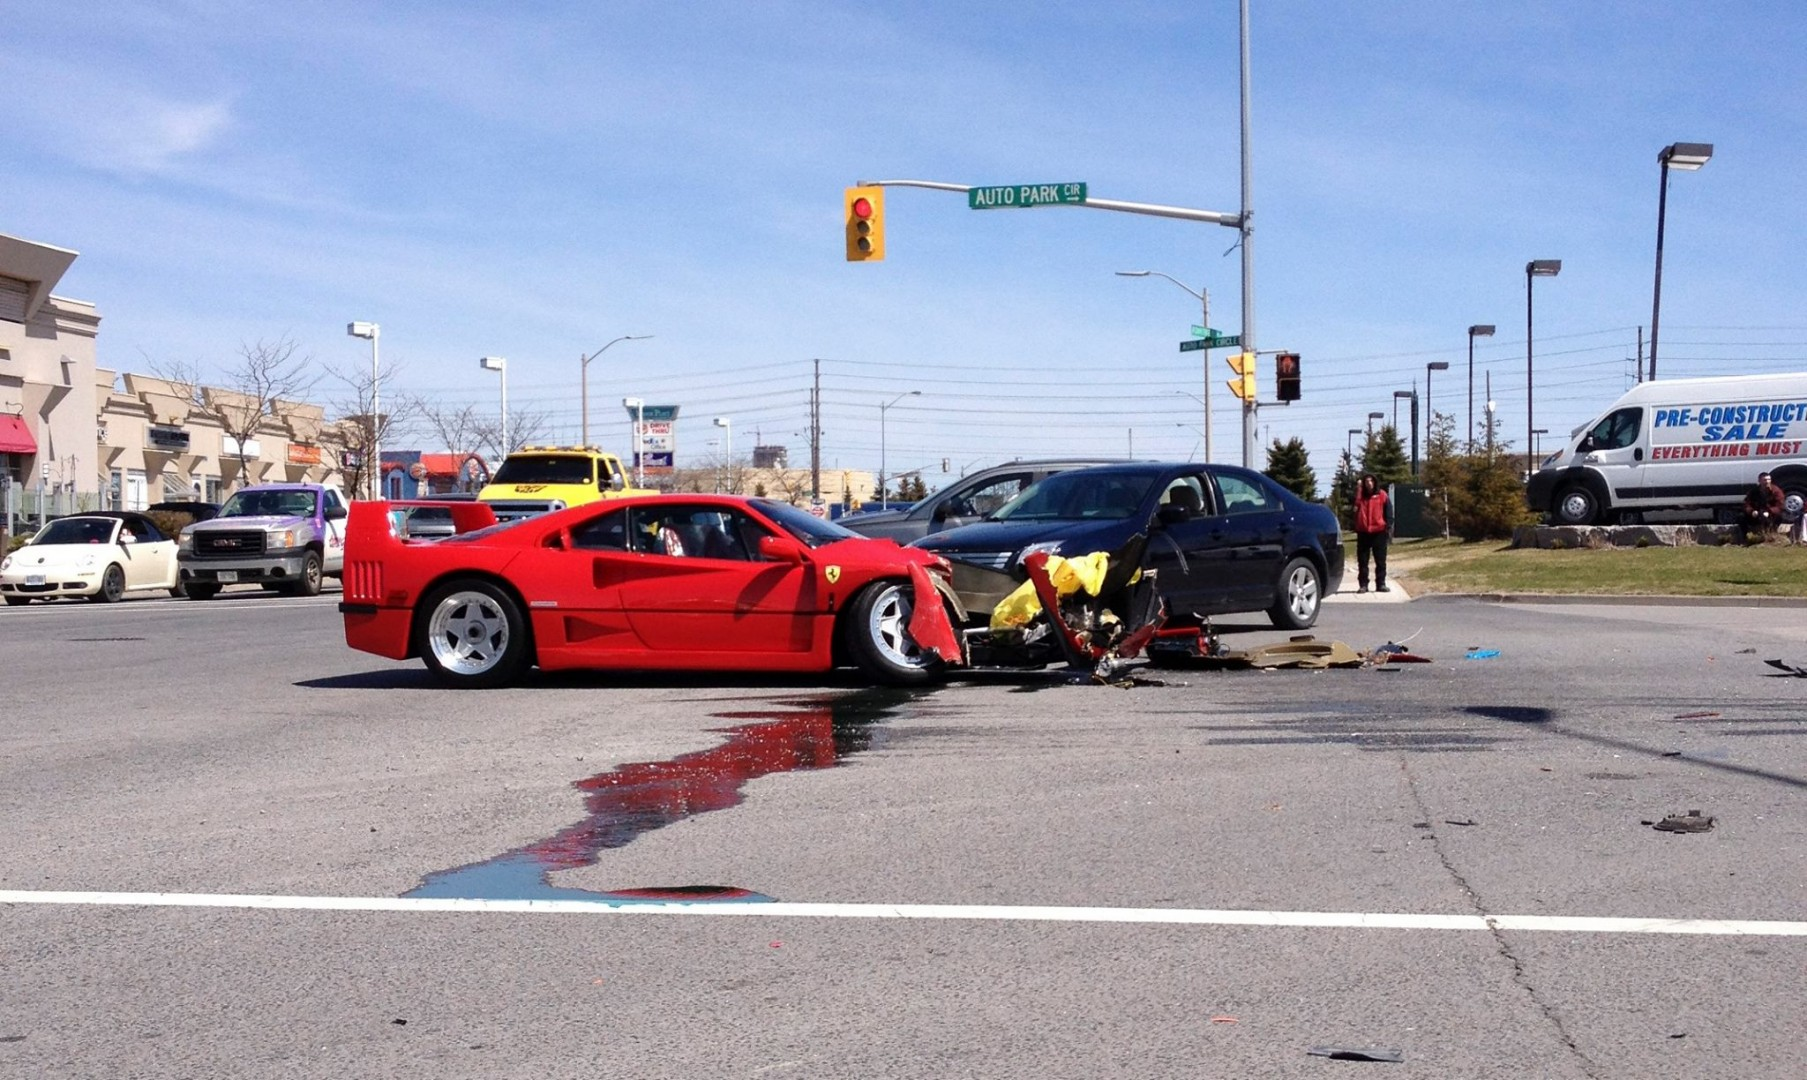 Ferrari F40 accident Toronto